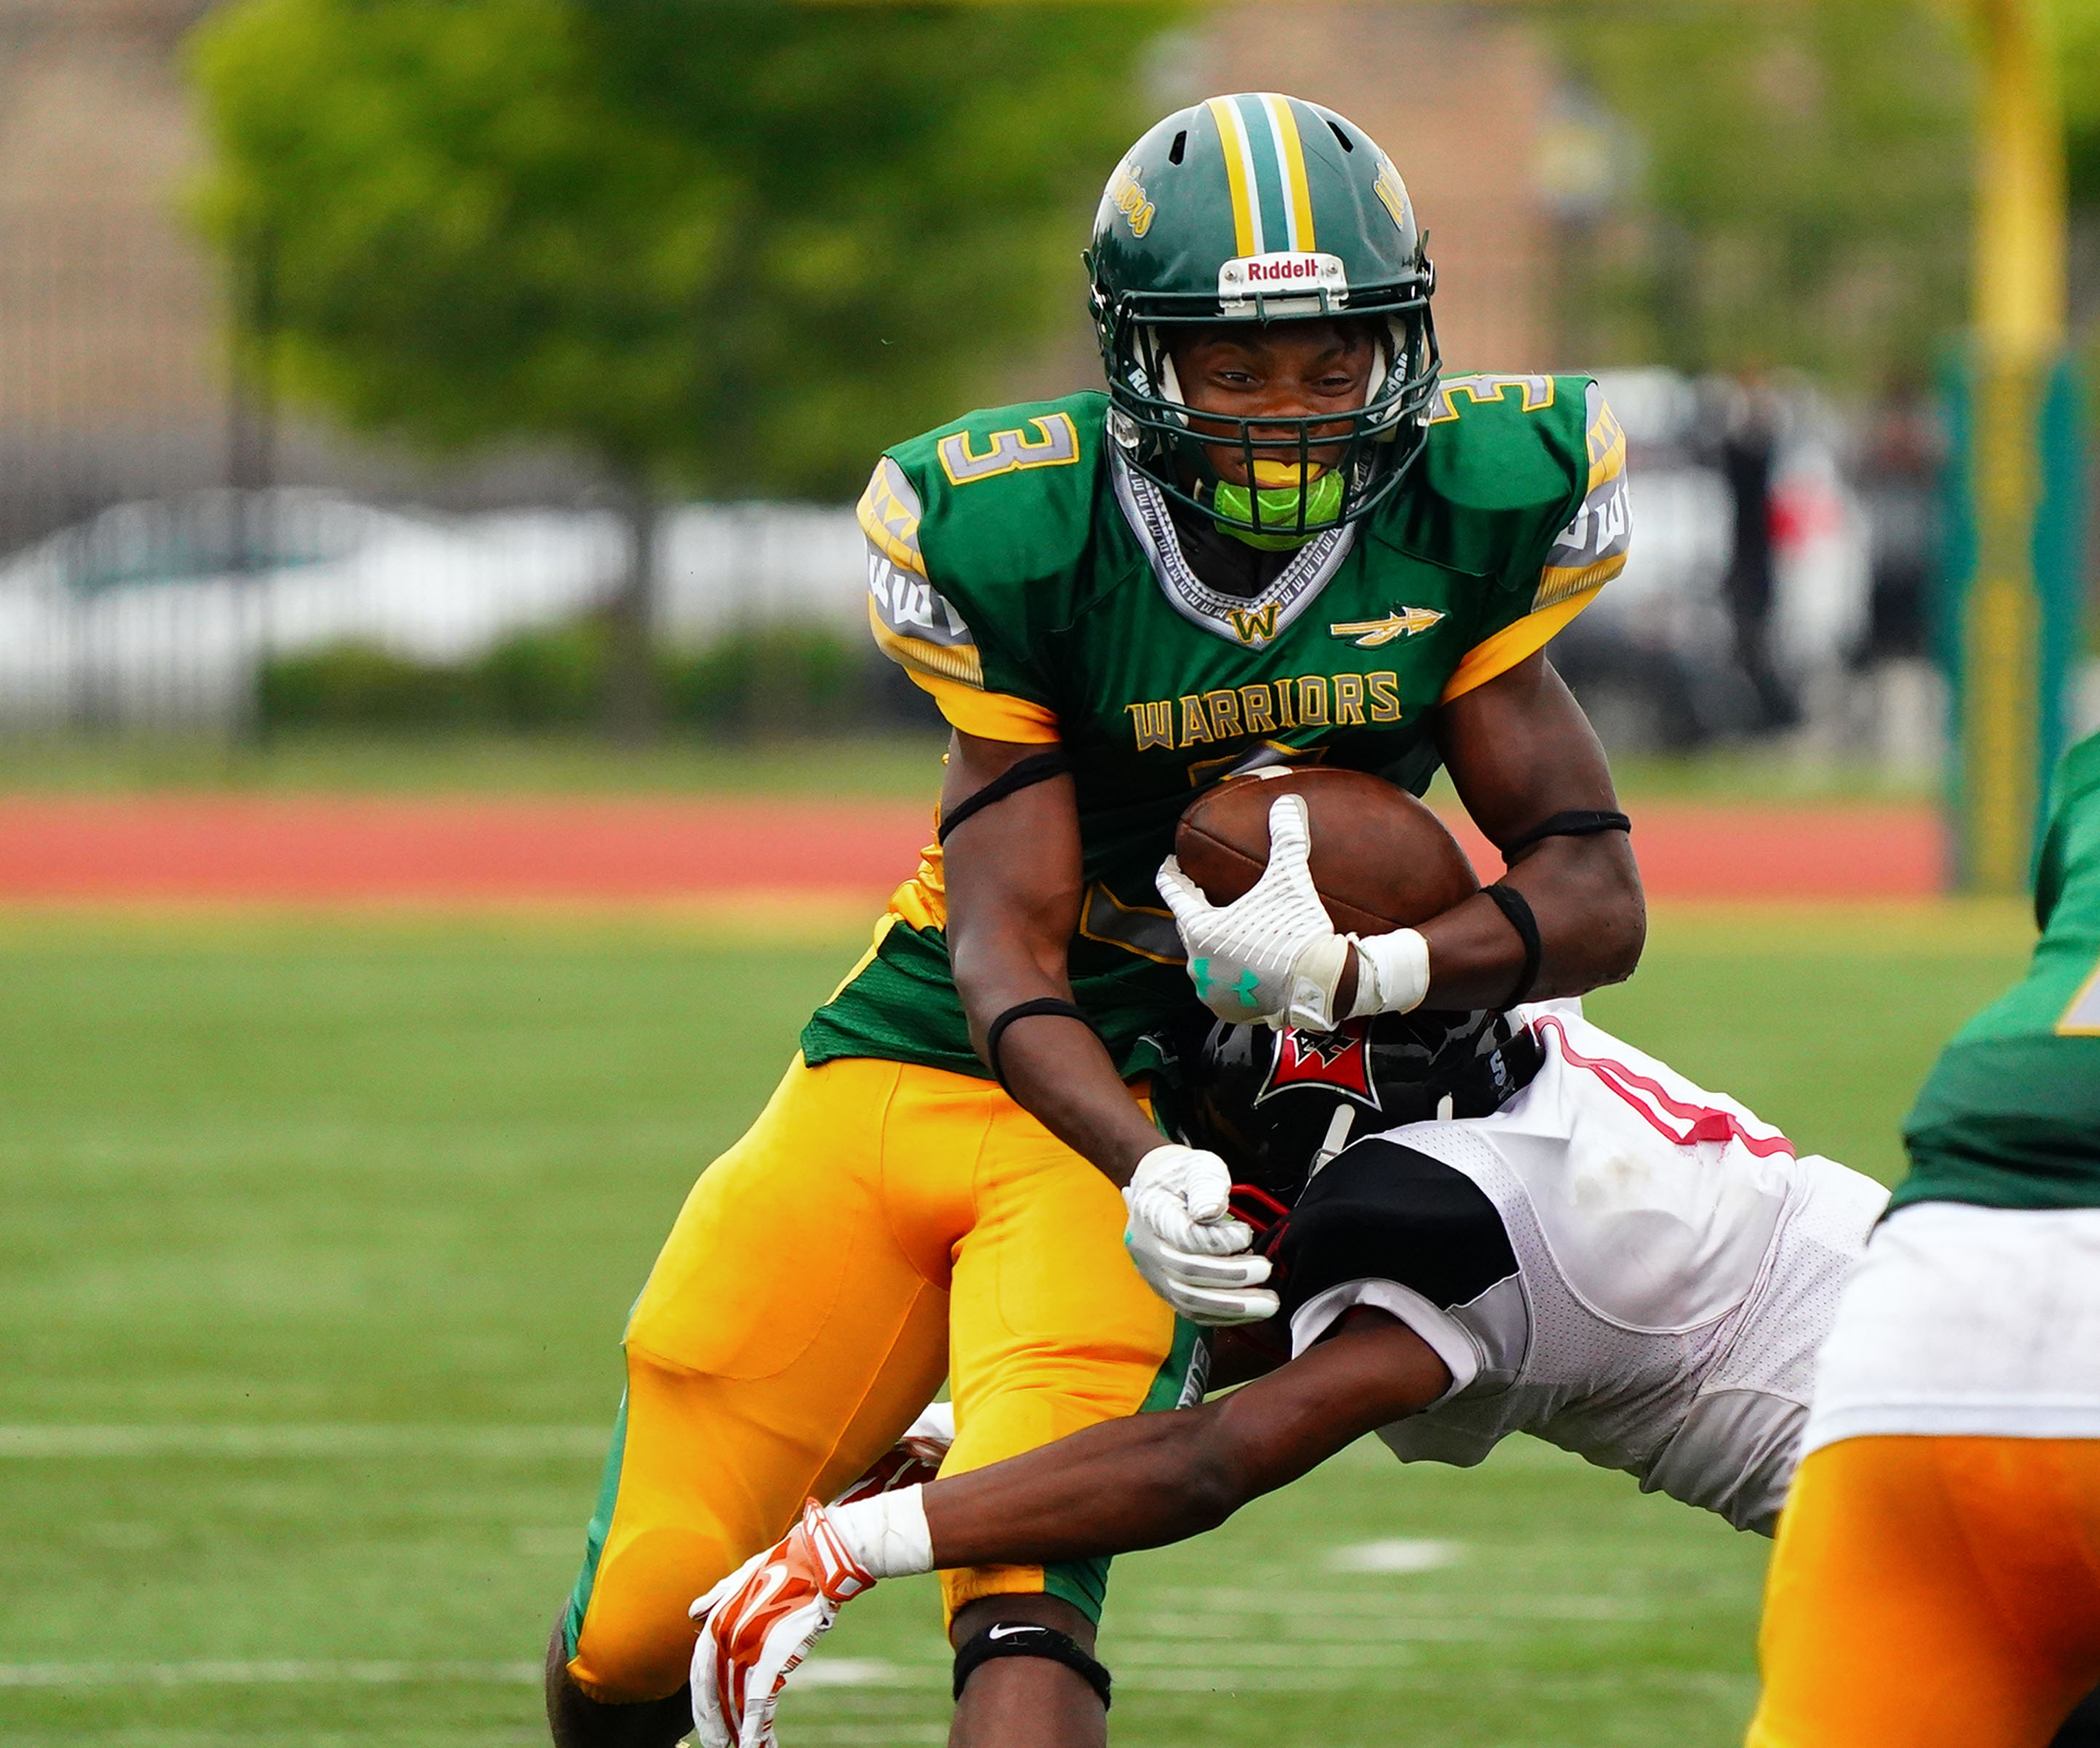 Westinghouse's Dewayne Brooks (3) is wrapped up by Raby's Jaylin Leggins (4).